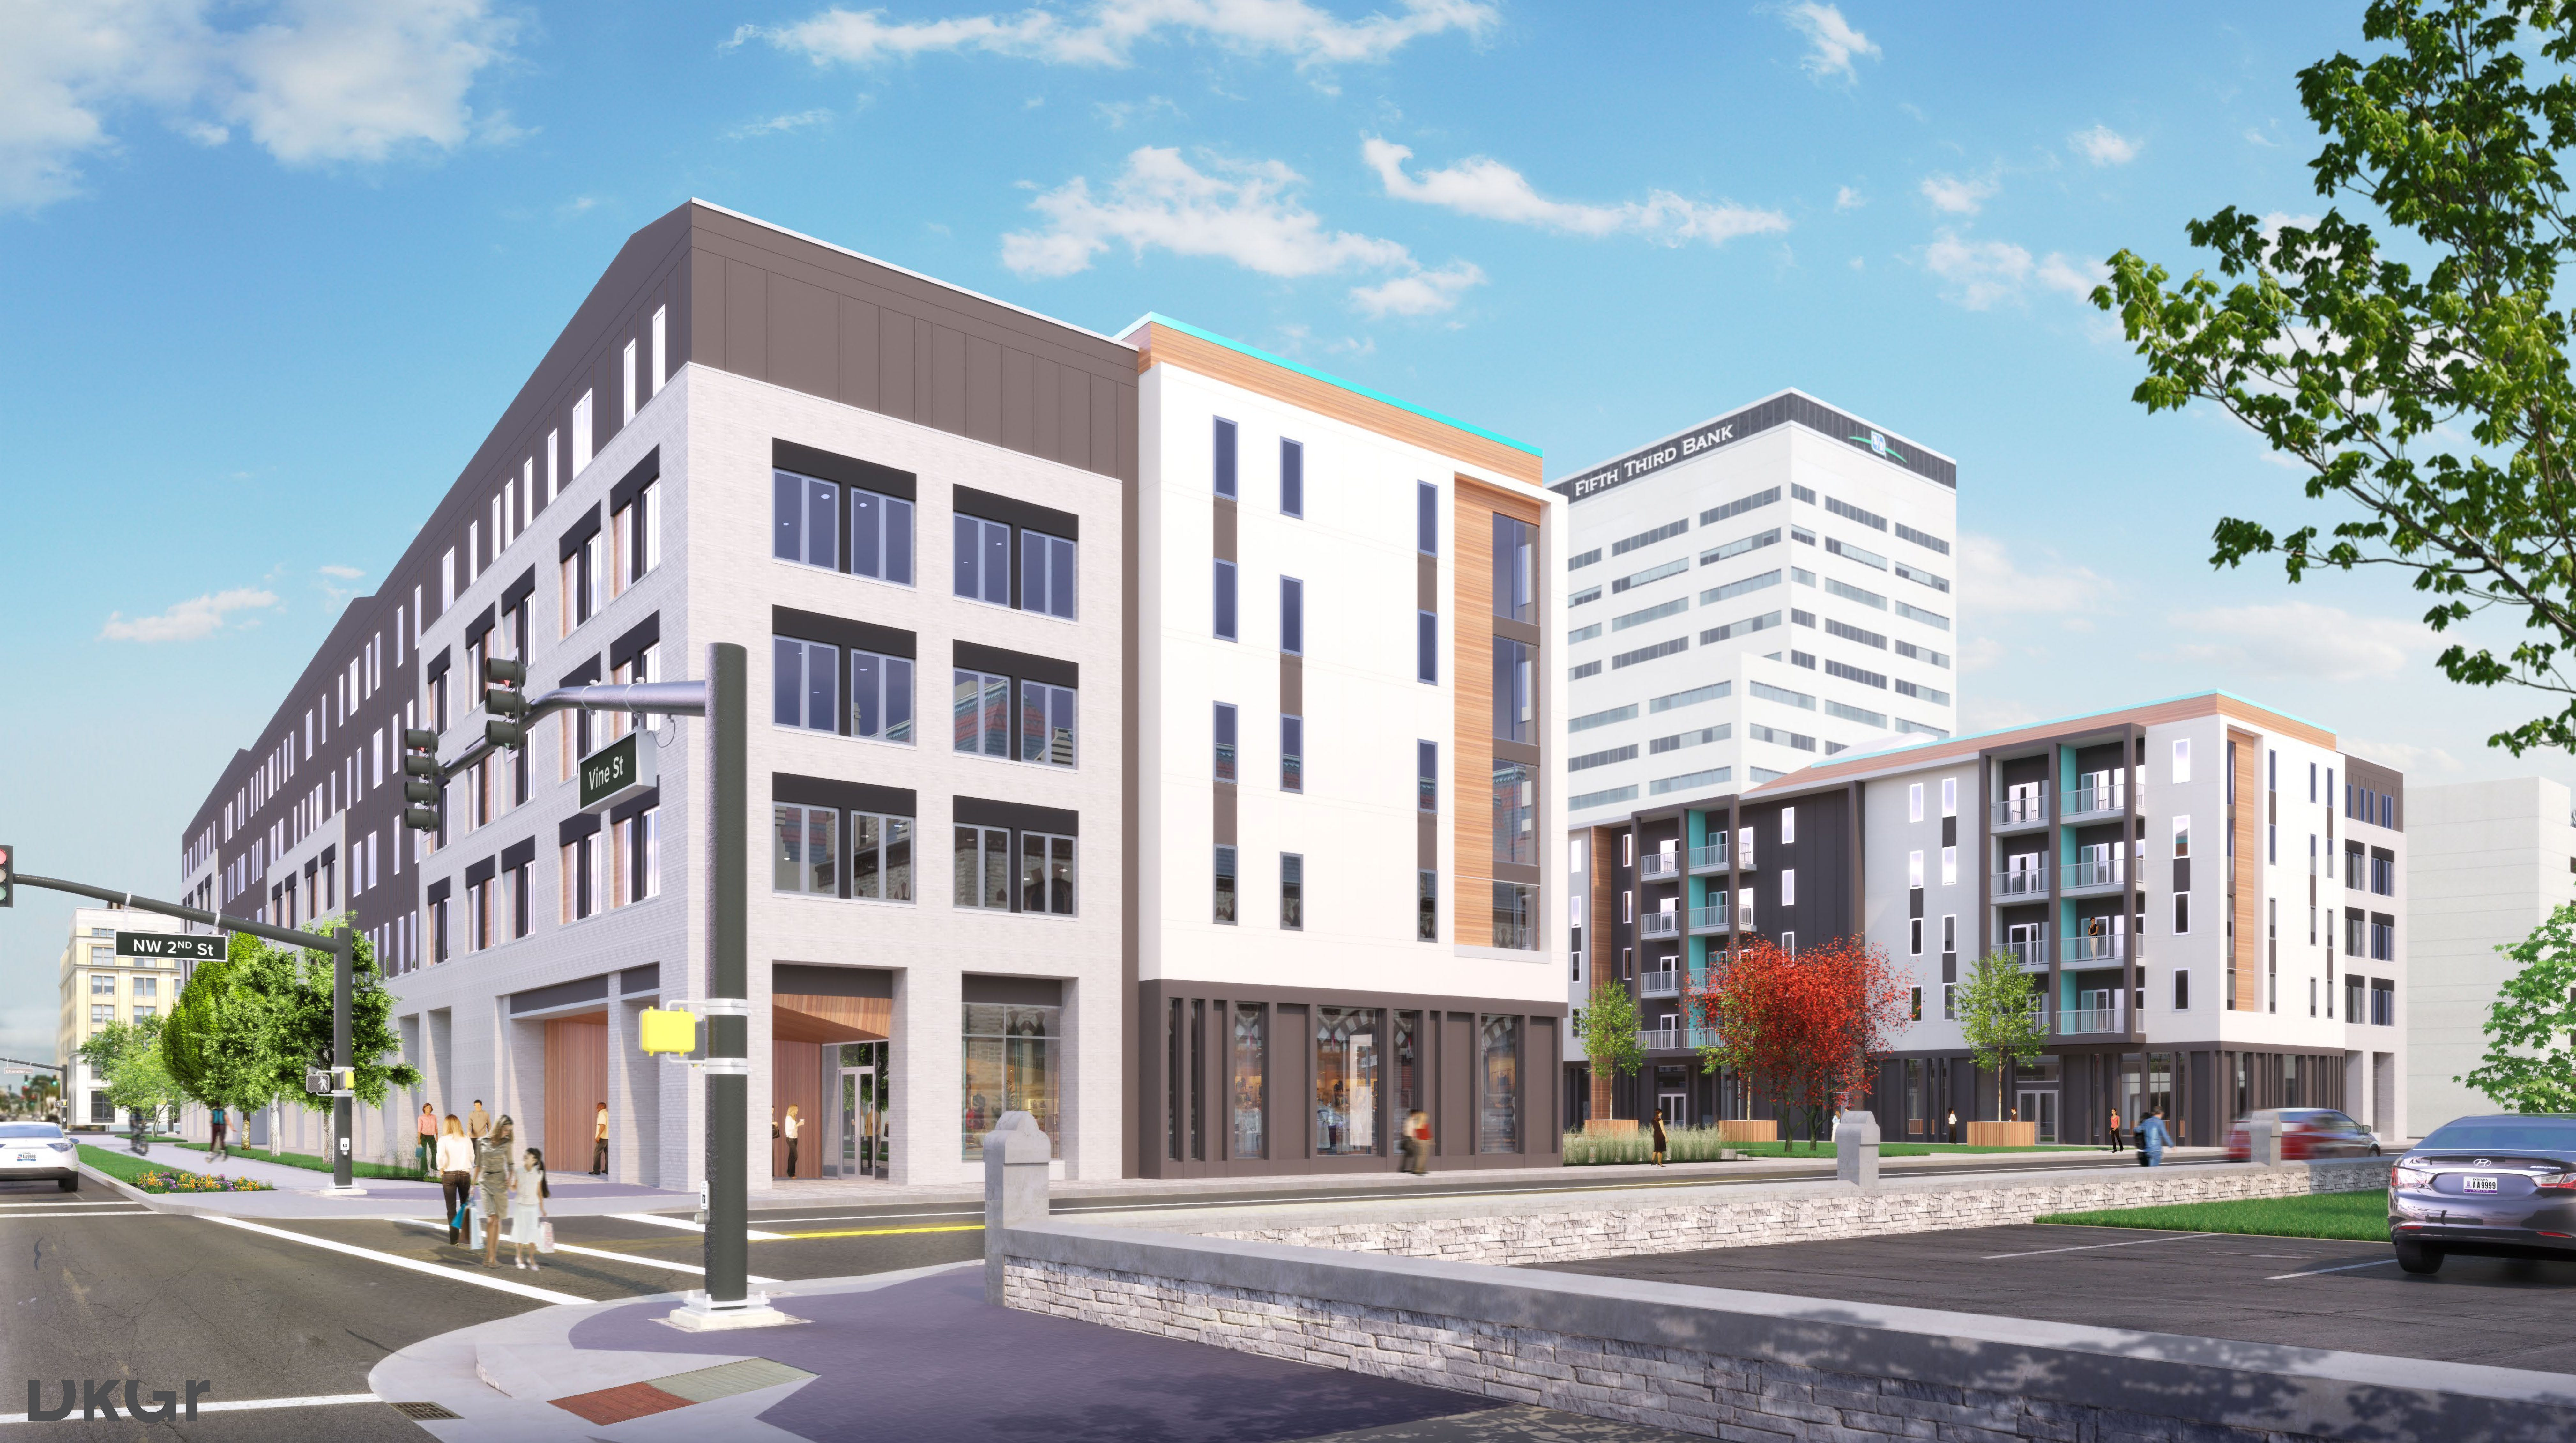 New Post House project to bring more change, innovation to Downtown Evansville